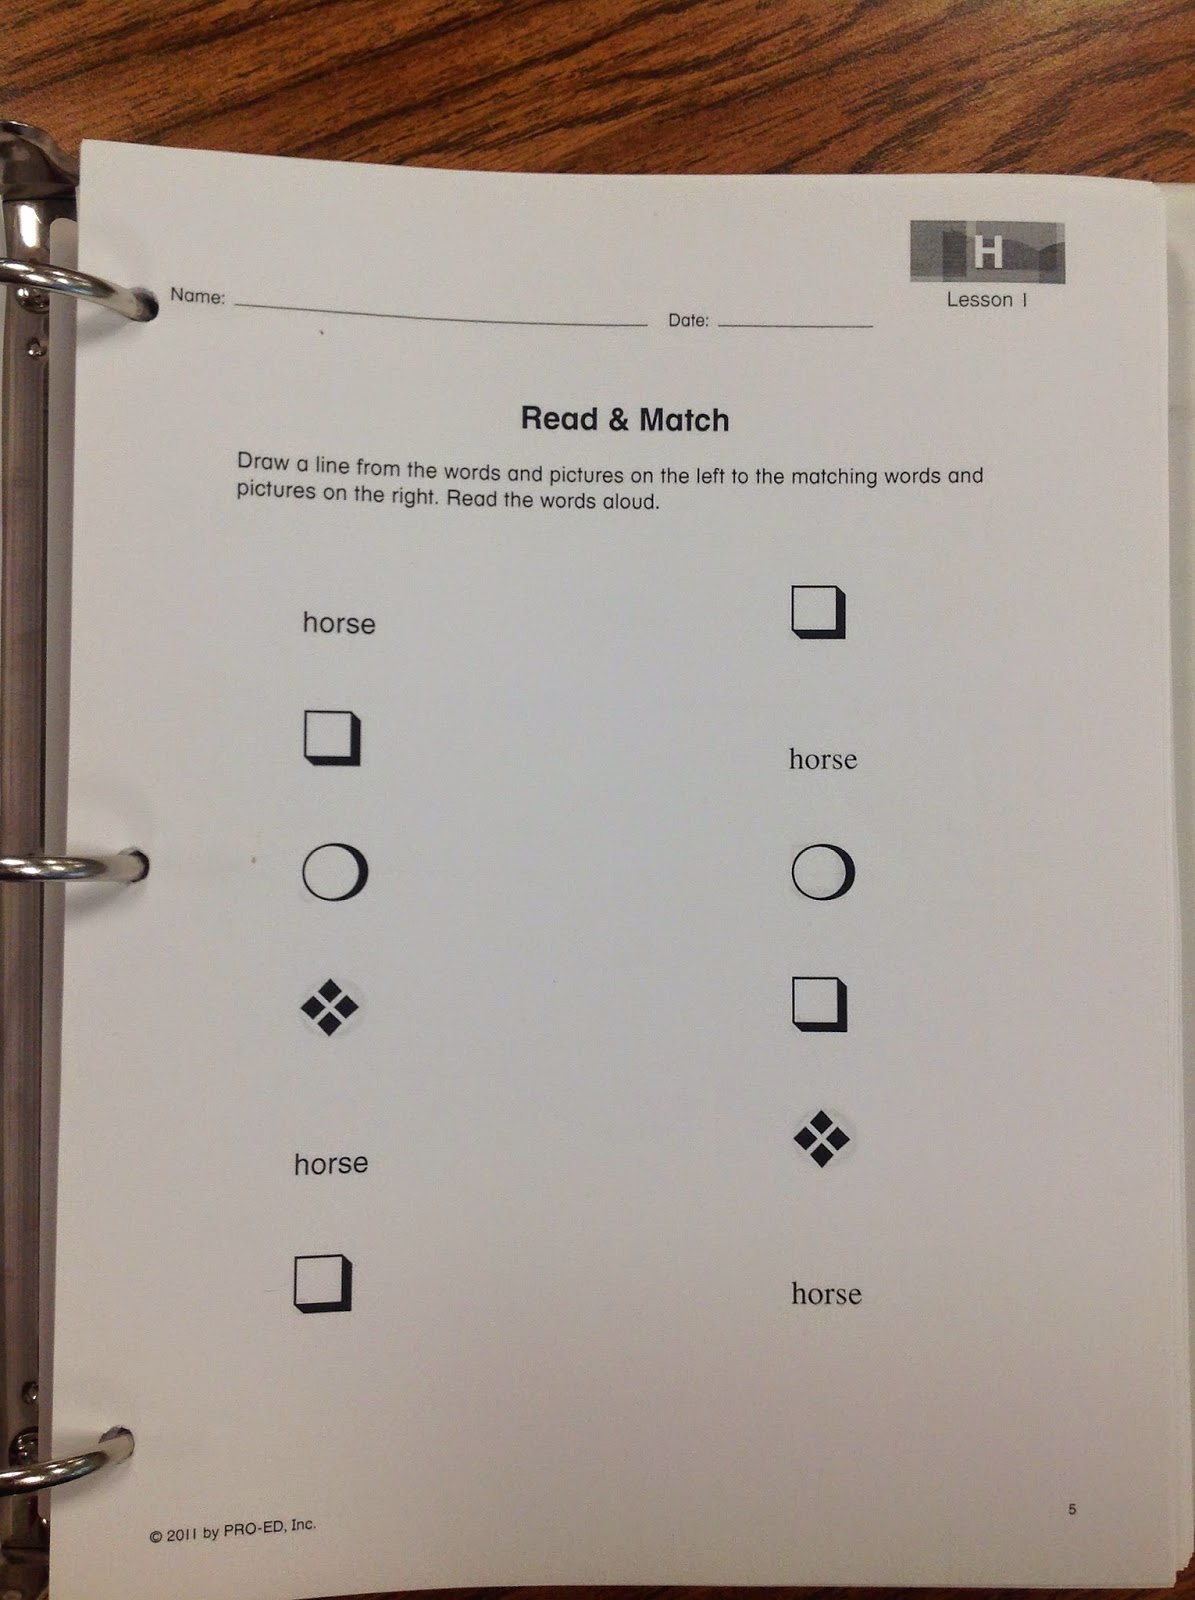 worksheet Free Edmark Reading Program Worksheets teach love autism edmark reading program in an classroom lastly the picture above and two pictures below are considered homework activities these things that could be sent home as h